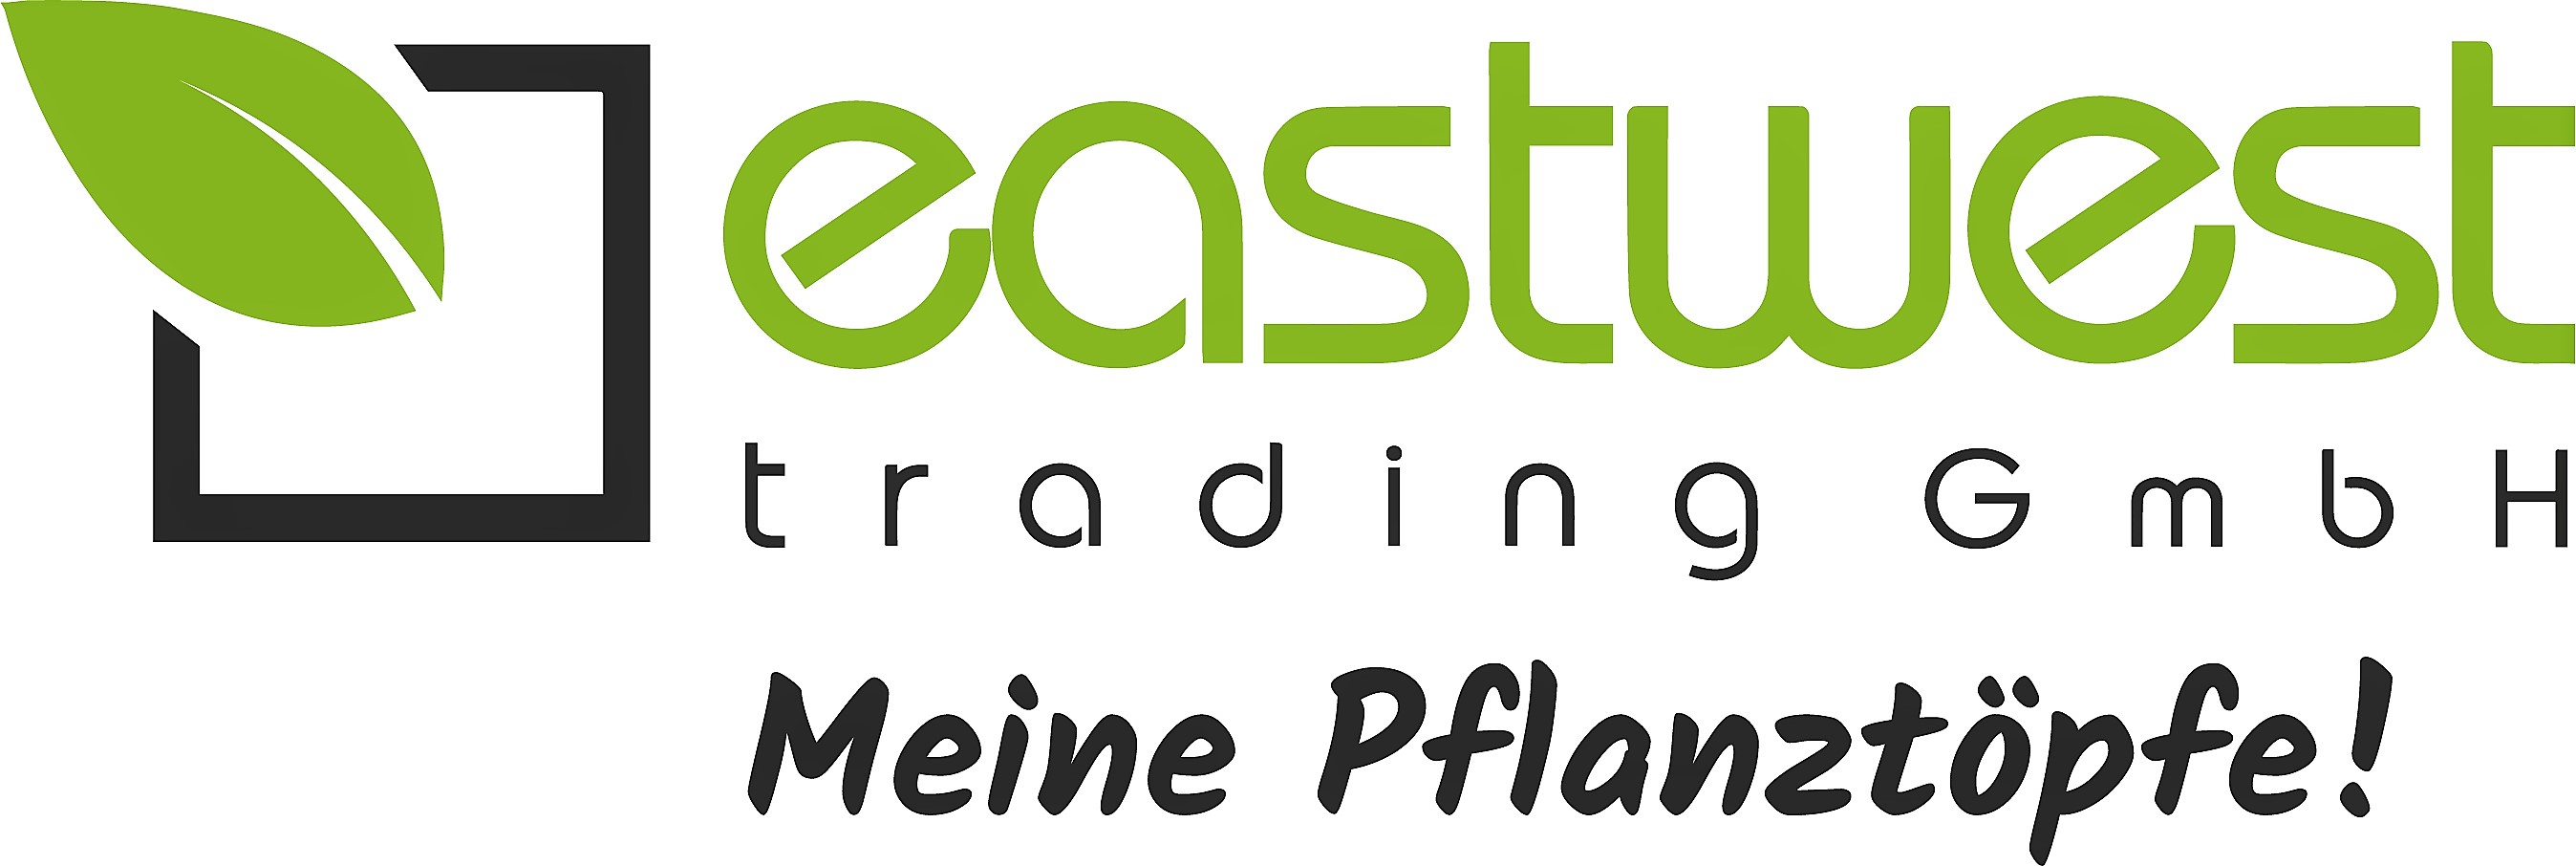 2016_eastwest-trading_logo_03